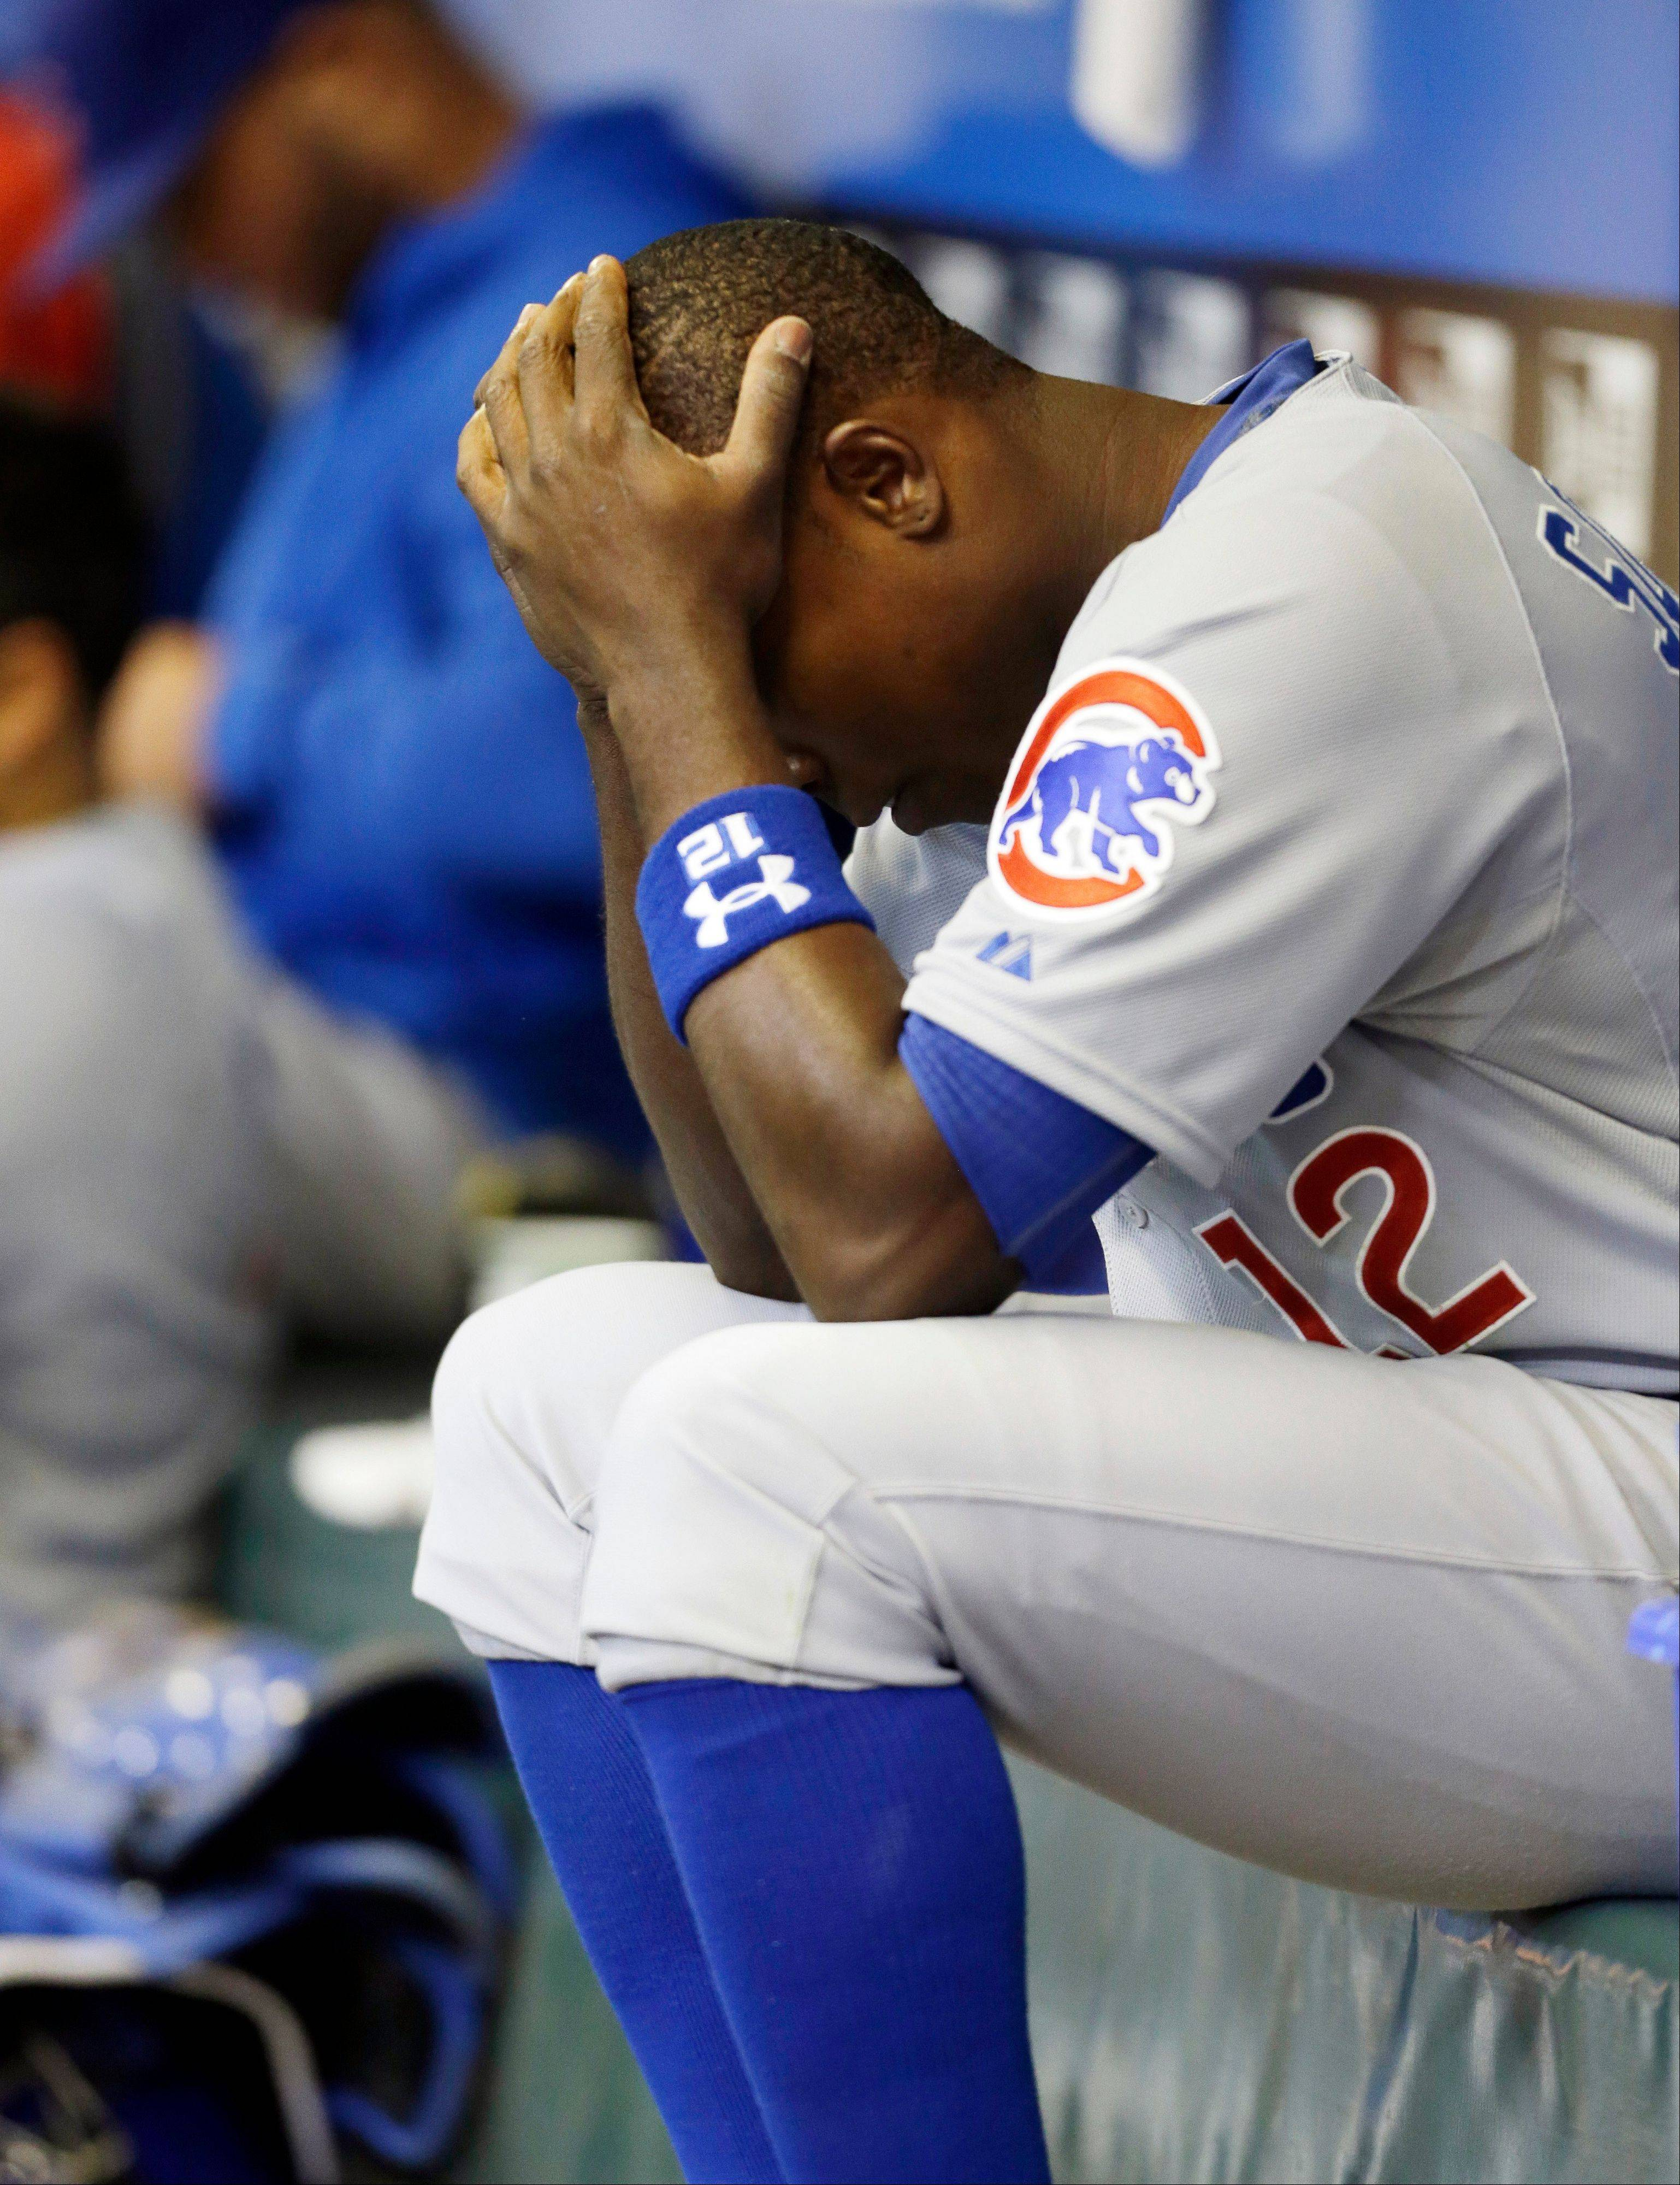 "Chicago Cubs' Alfonso Soriano reacts after the sixth inning of Saturday's game against the Milwaukee Brewers at Miller Park. ""Everybody in this clubhouse wants to win so bad and we want to show to the other team and to the fans that we can do it,"" he said after the game."